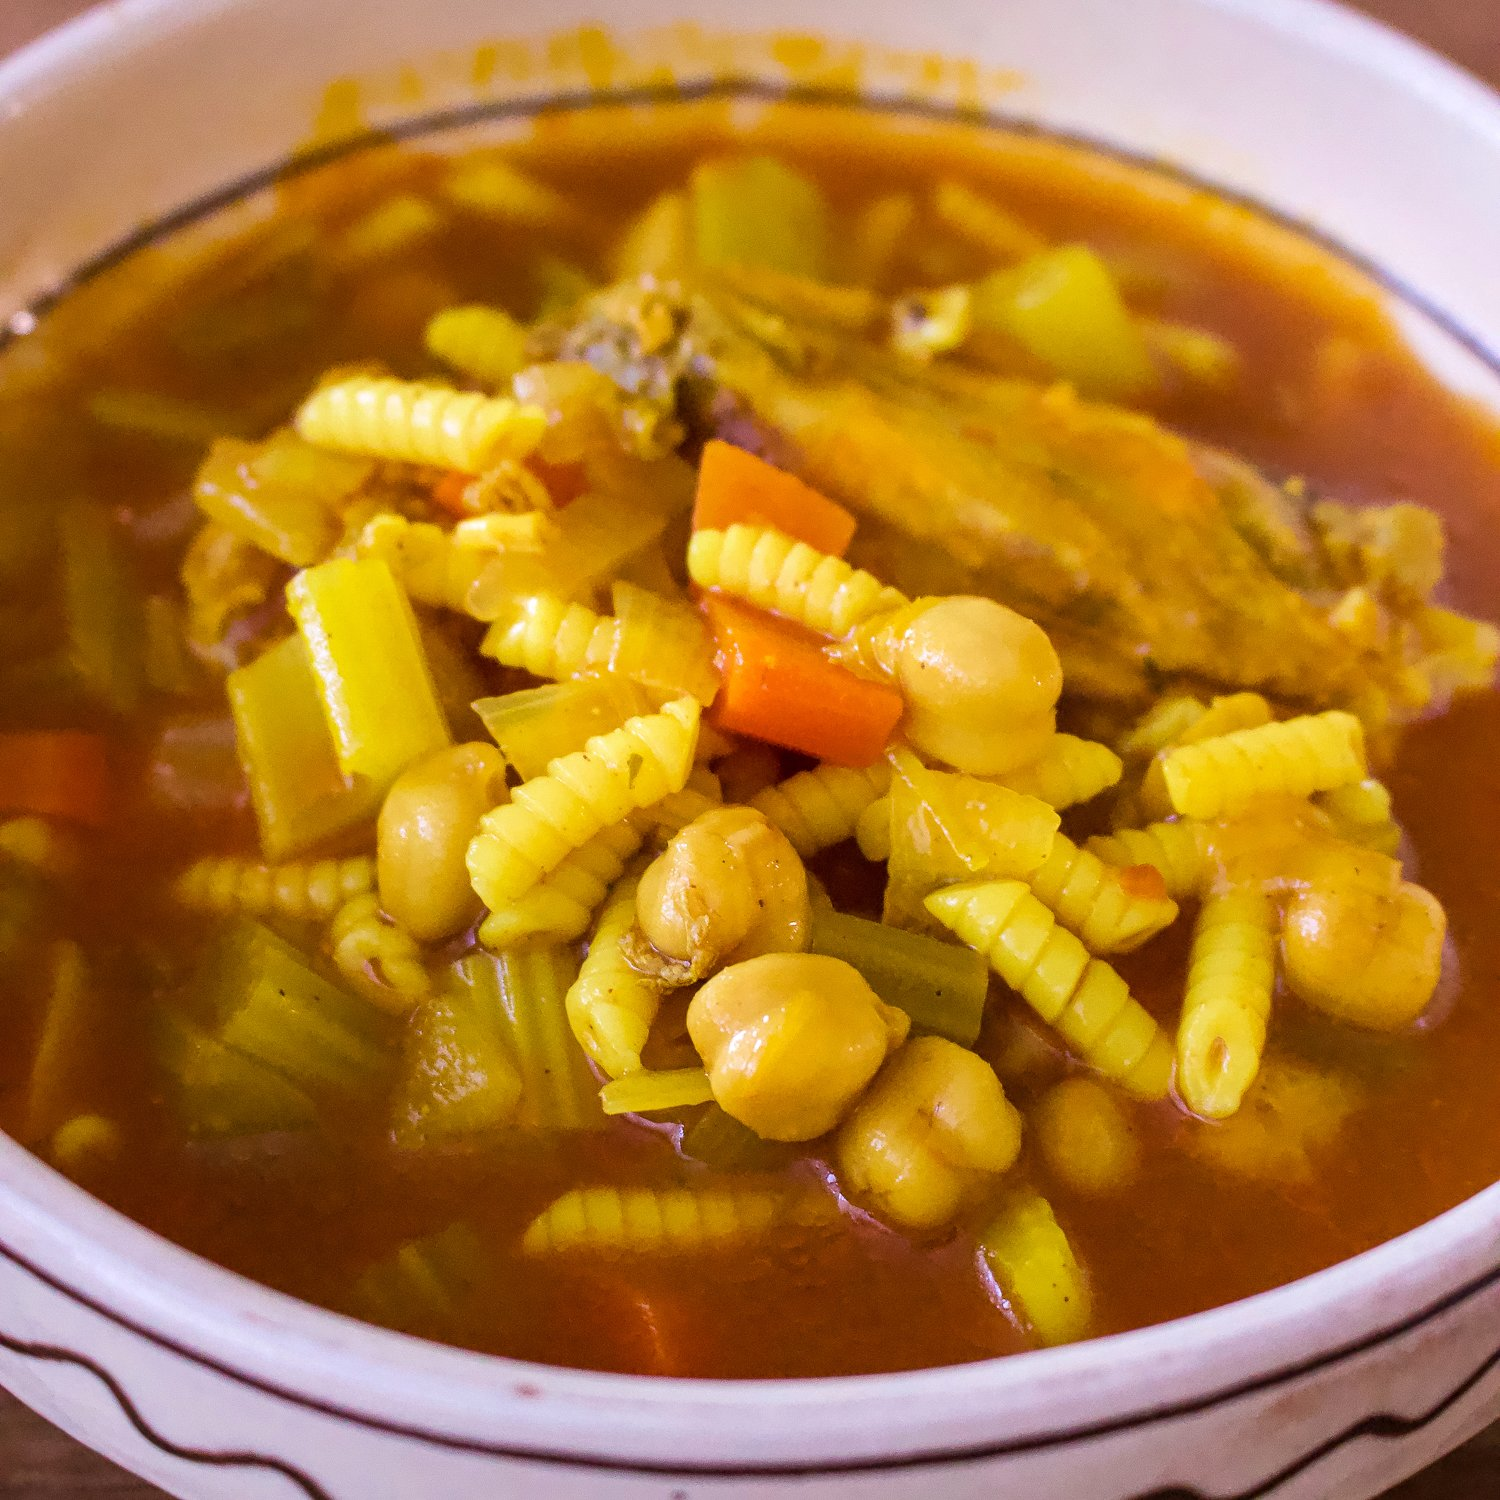 This Moroccan chicken soup with chickpeas recipe is a really good one for winters and also the times when you fight a cold. Besides the chicken, this soup has a lot of warming spices. Spices like cumin, coriander, cinnamon, turmeric are best known not only for their flavor but also for their health benefits.